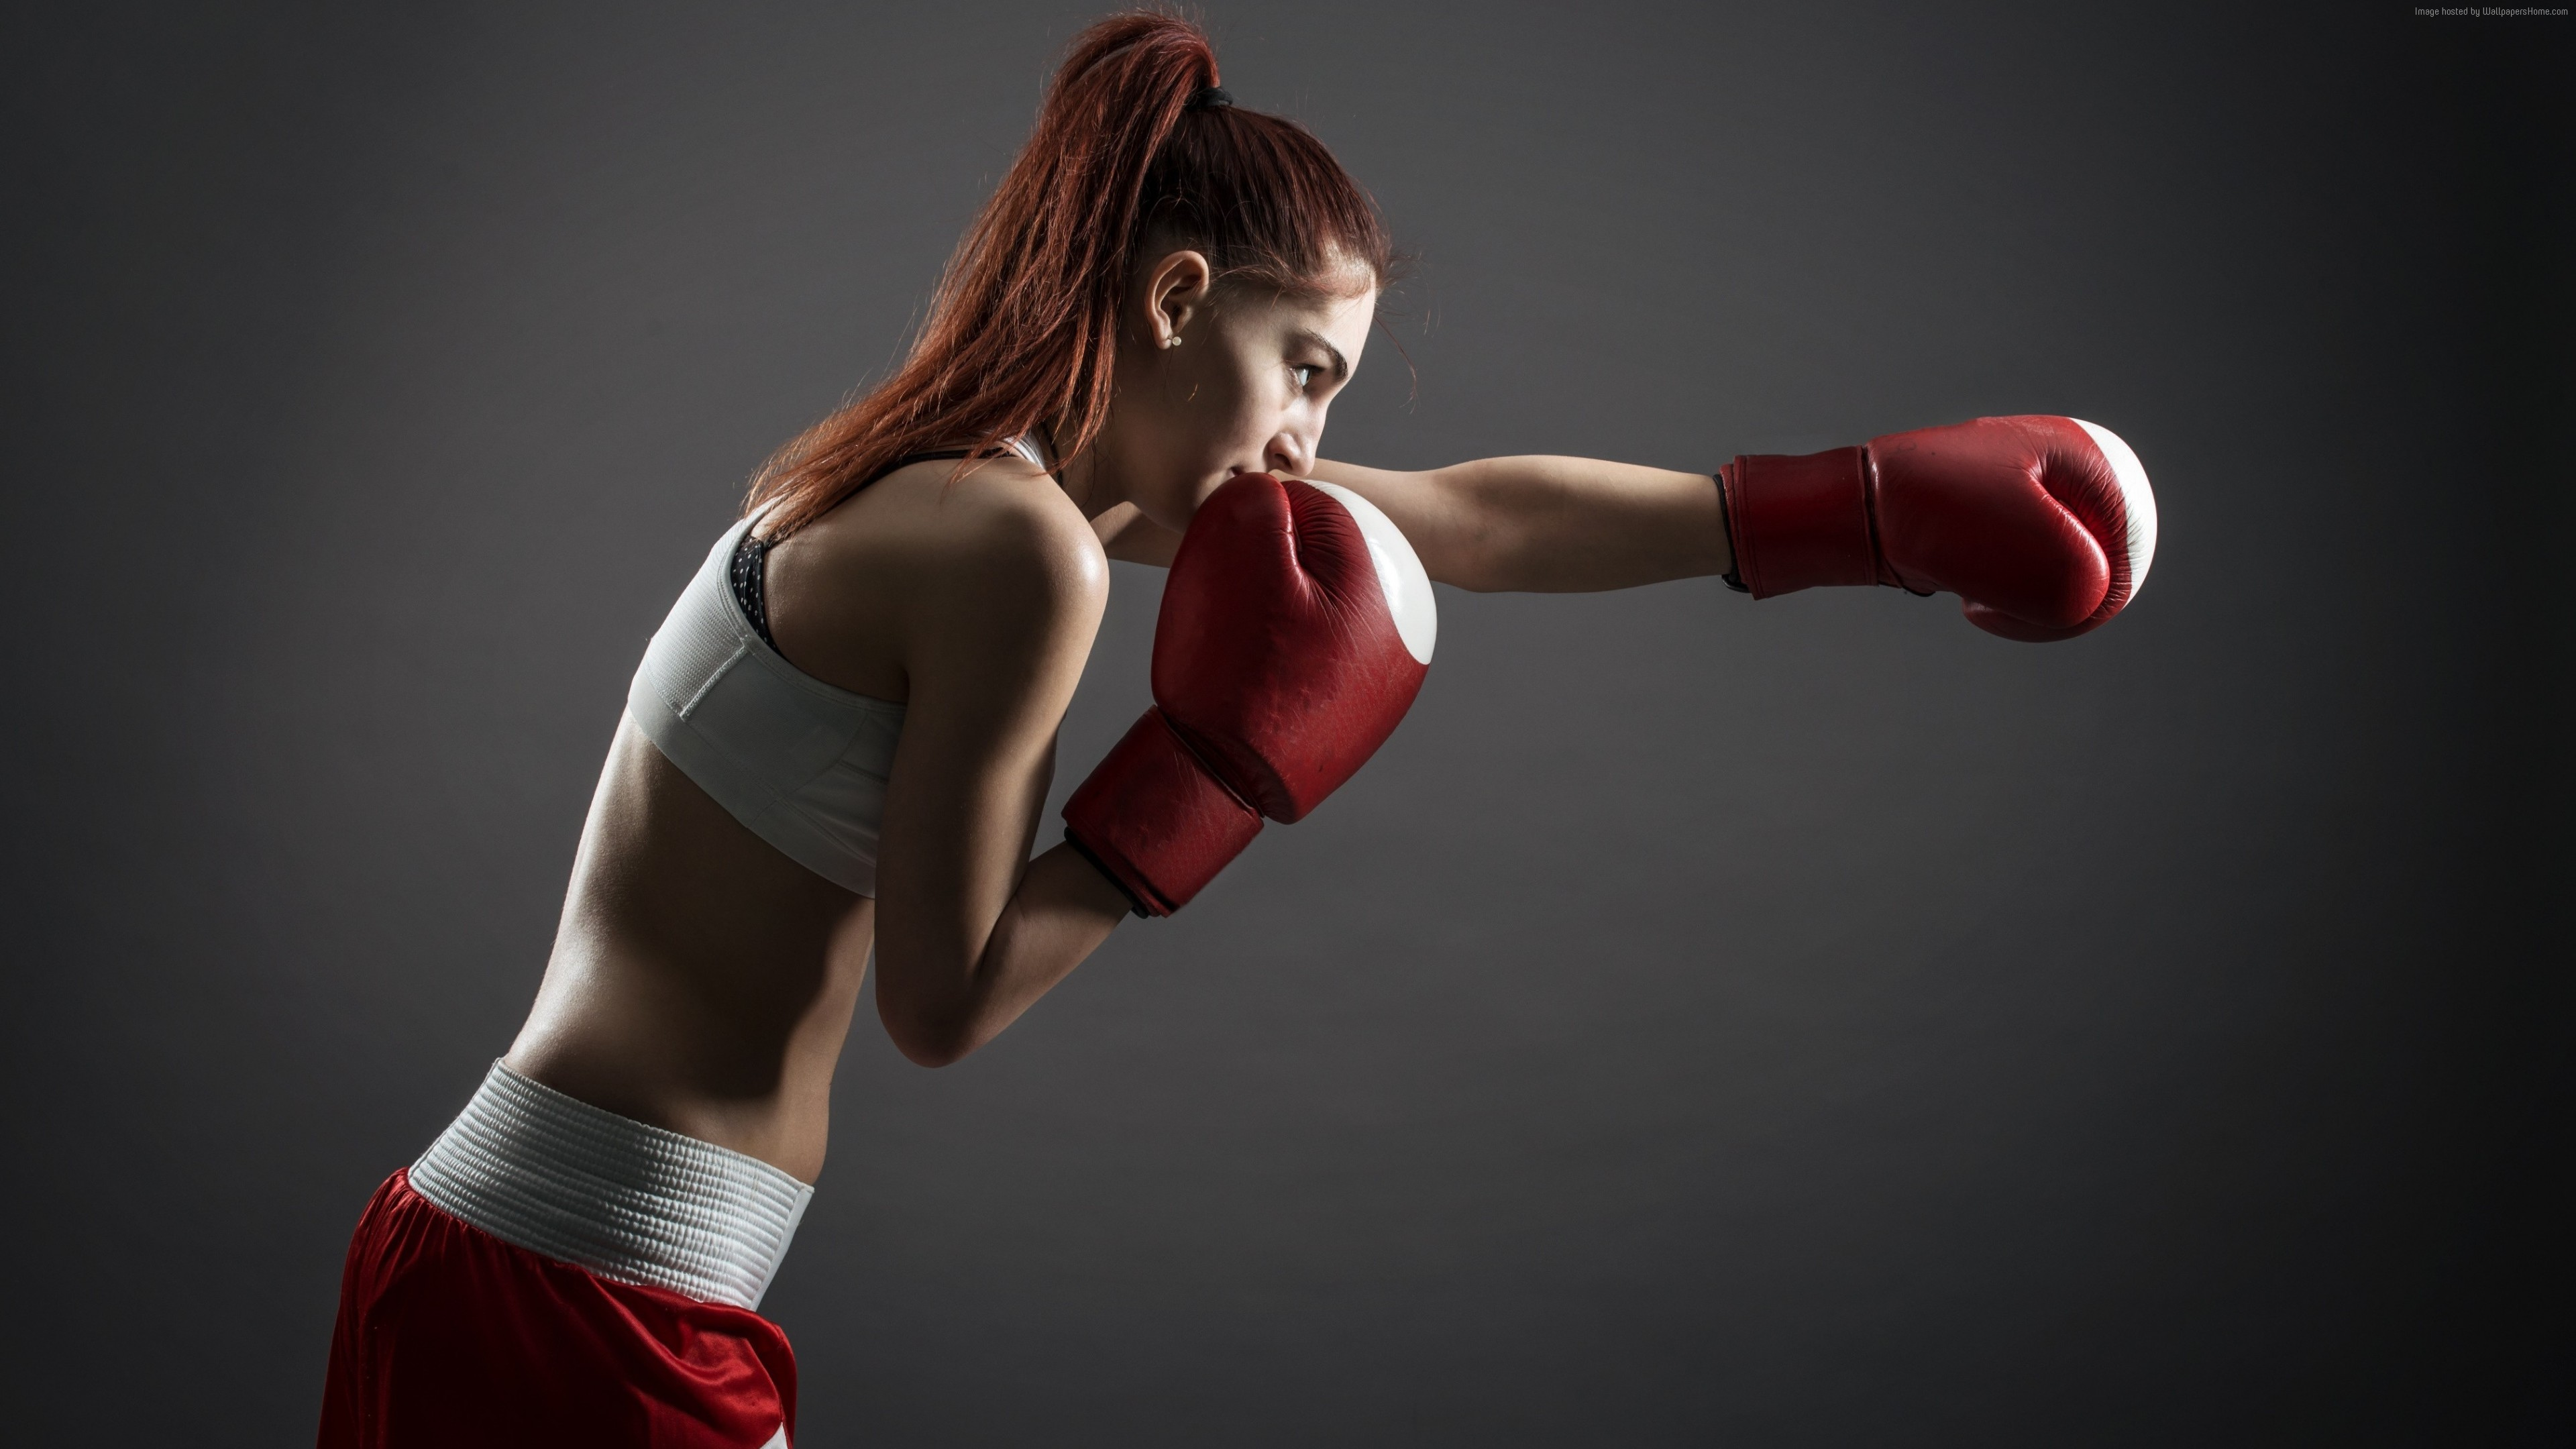 Wallpaper Boxing gloves, girl, boxing, 4K, Sport